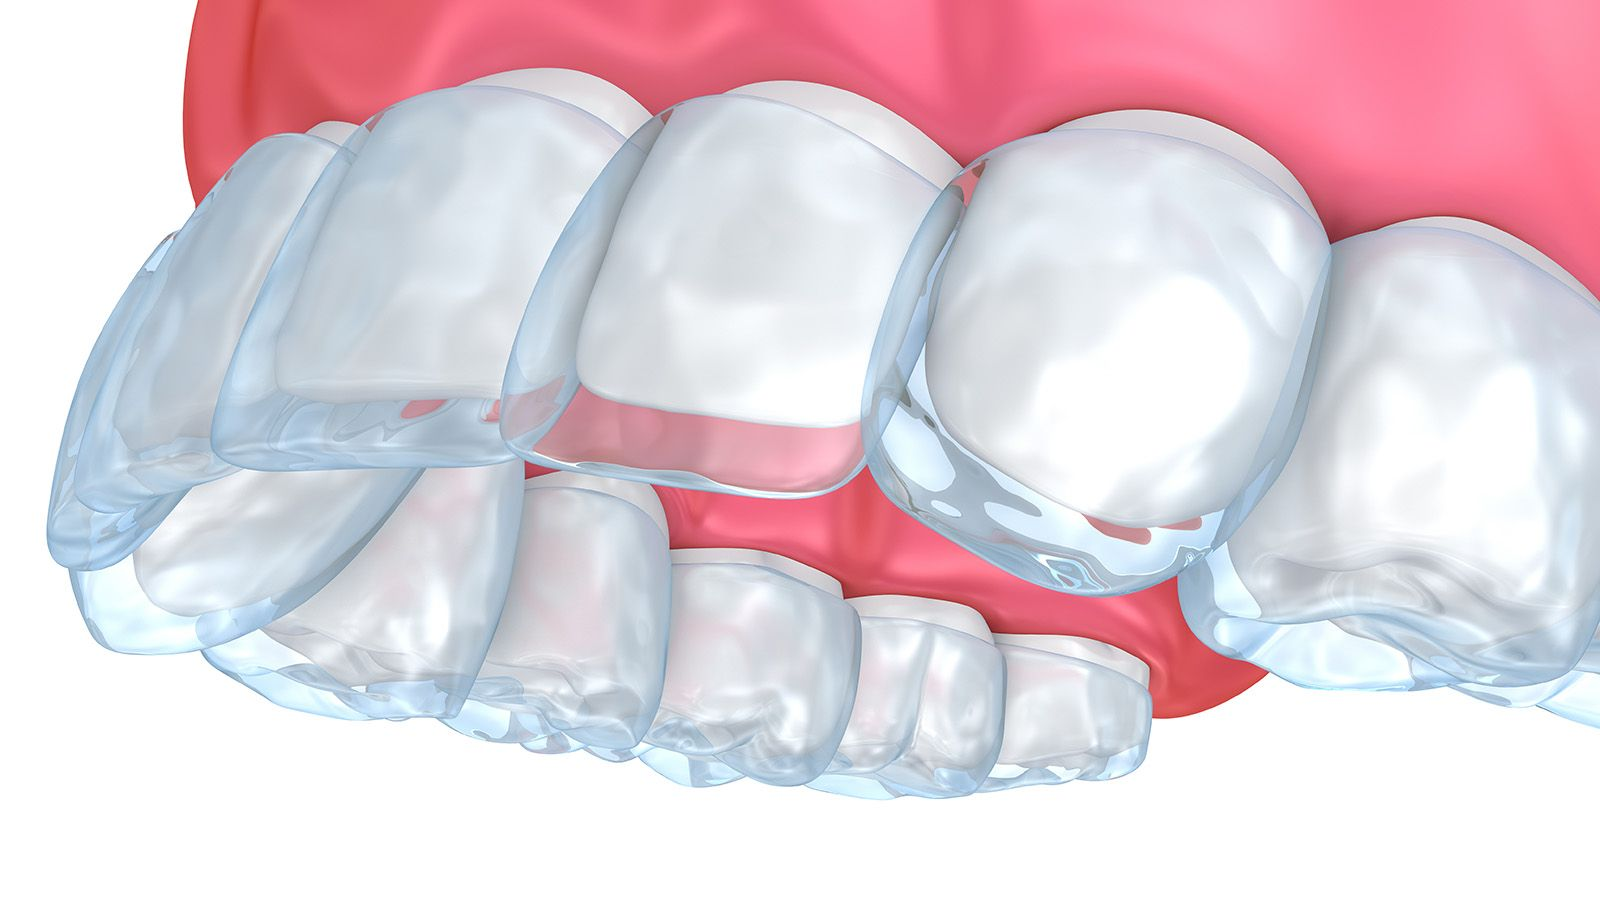 illustration of Invisalign